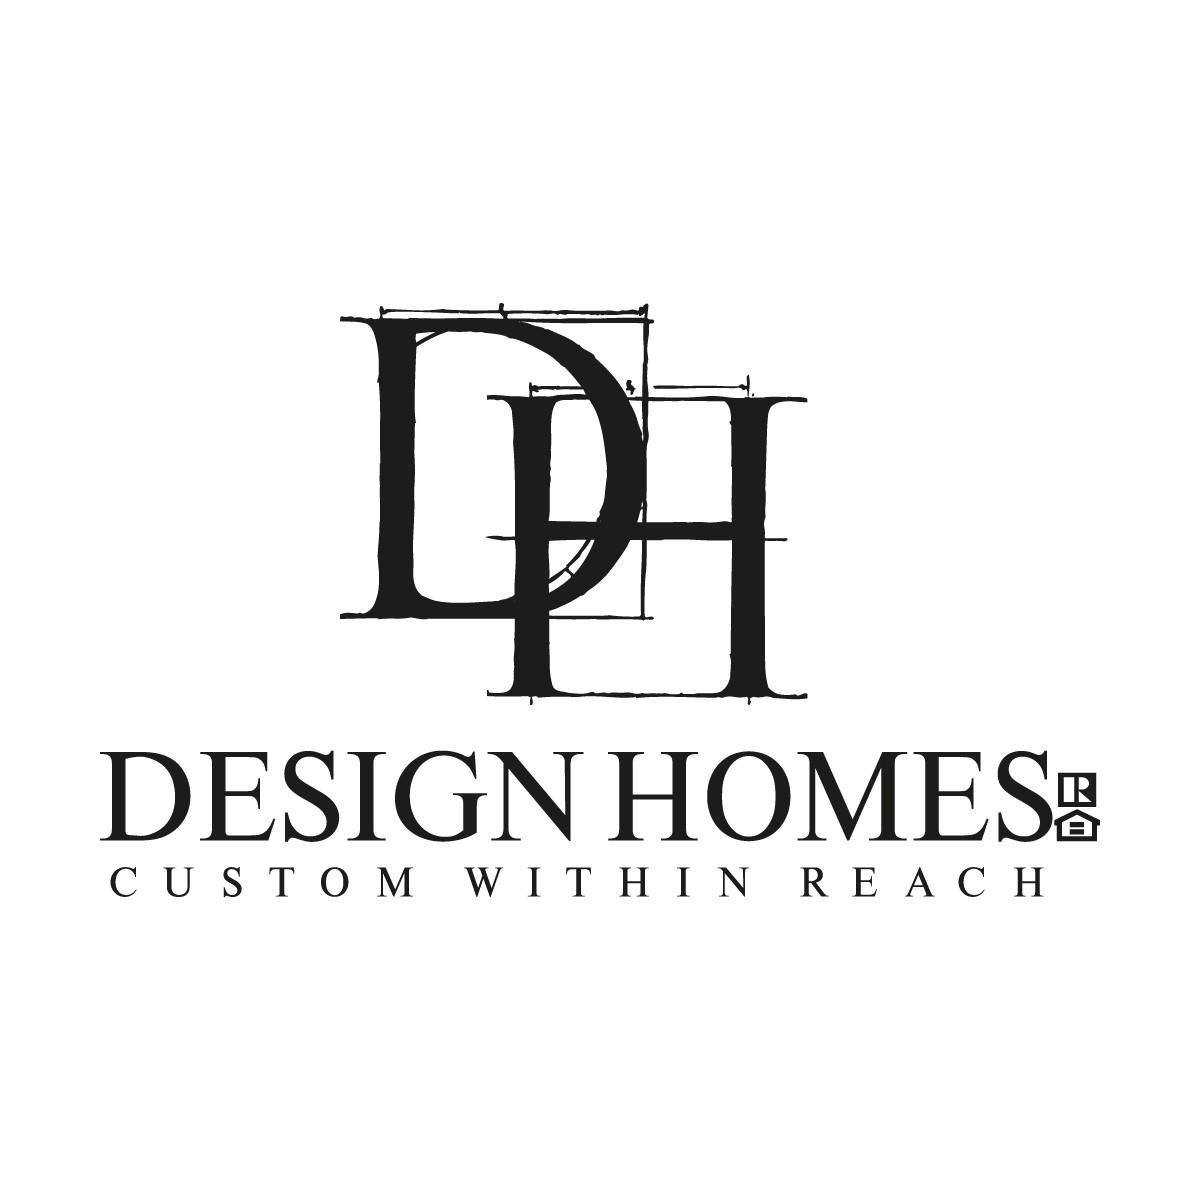 Design Homes U0026 Development Co.